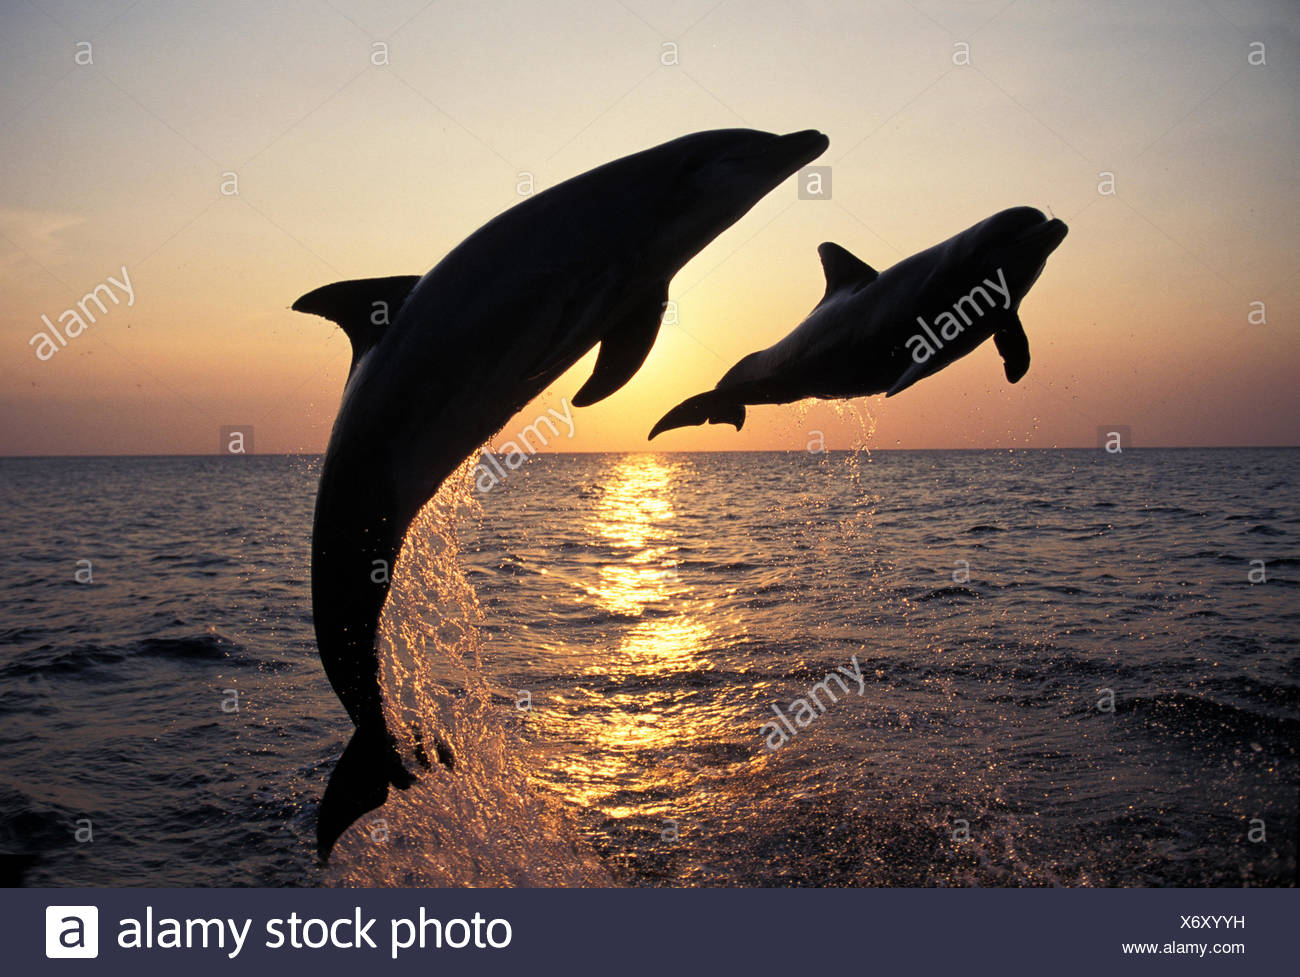 BOTTLENOSE DOLPHIN tursiops truncatus, ADULTS LEAPING AT SUNSET, HONDURAS - Stock Image